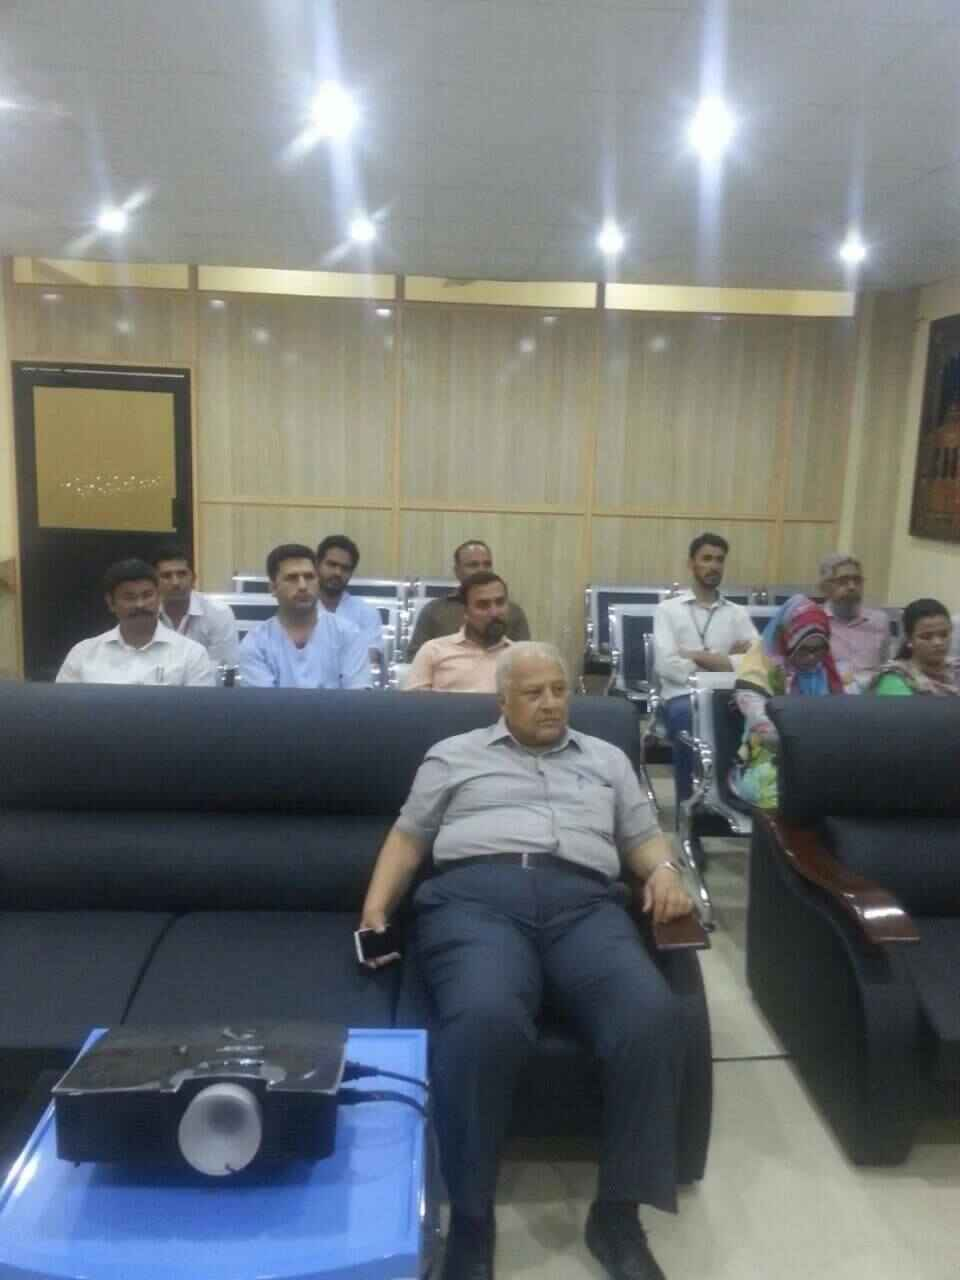 Osmania Hospital Karachi conducted a training of their reception and some other staff members on March 21, 2017 at 2.30 ...